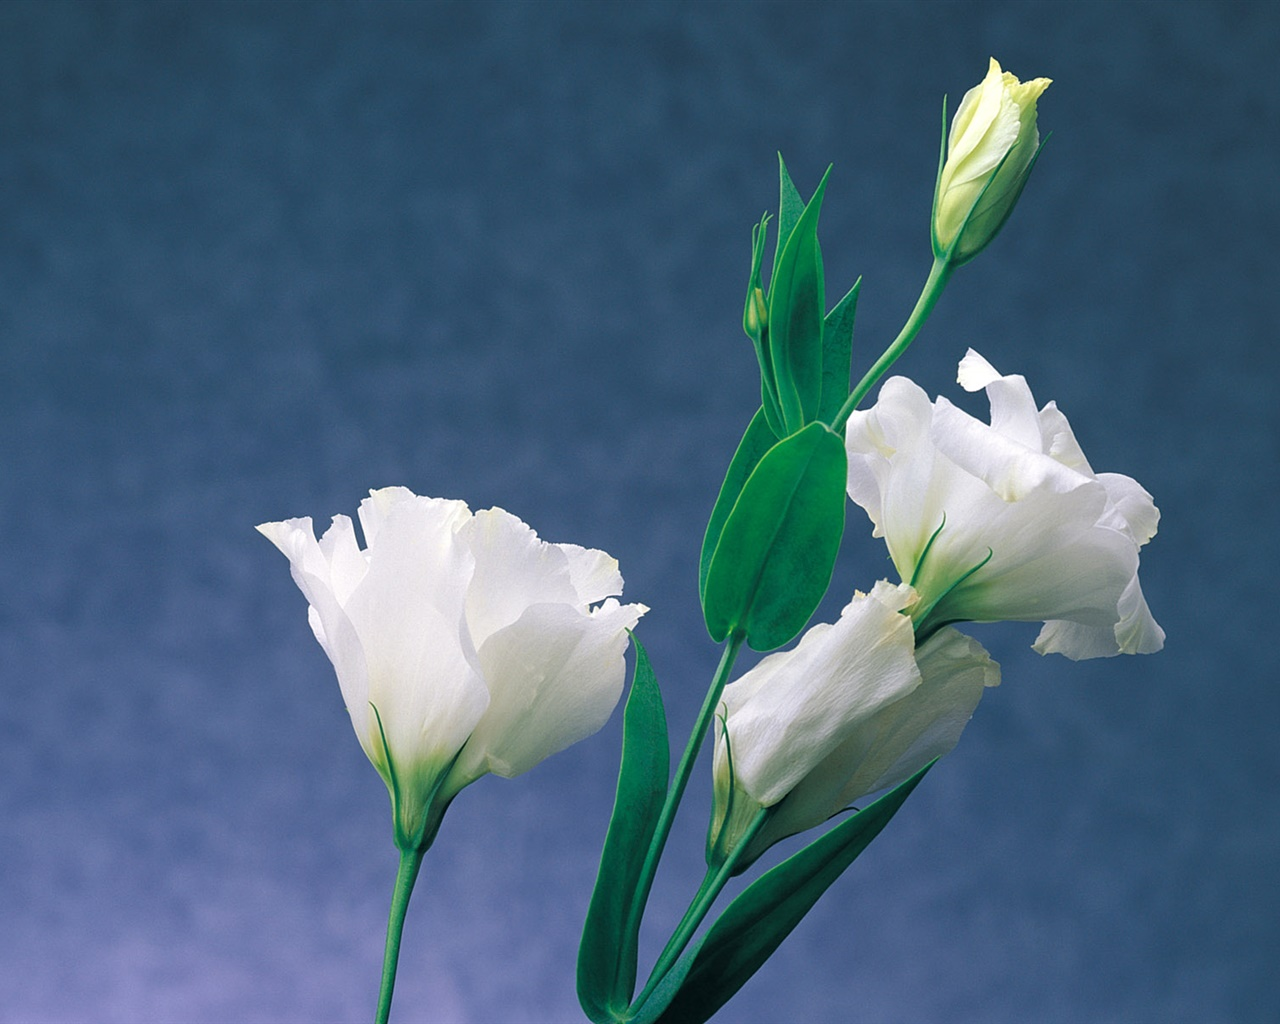 White carnations 1280x1024 wallpaper